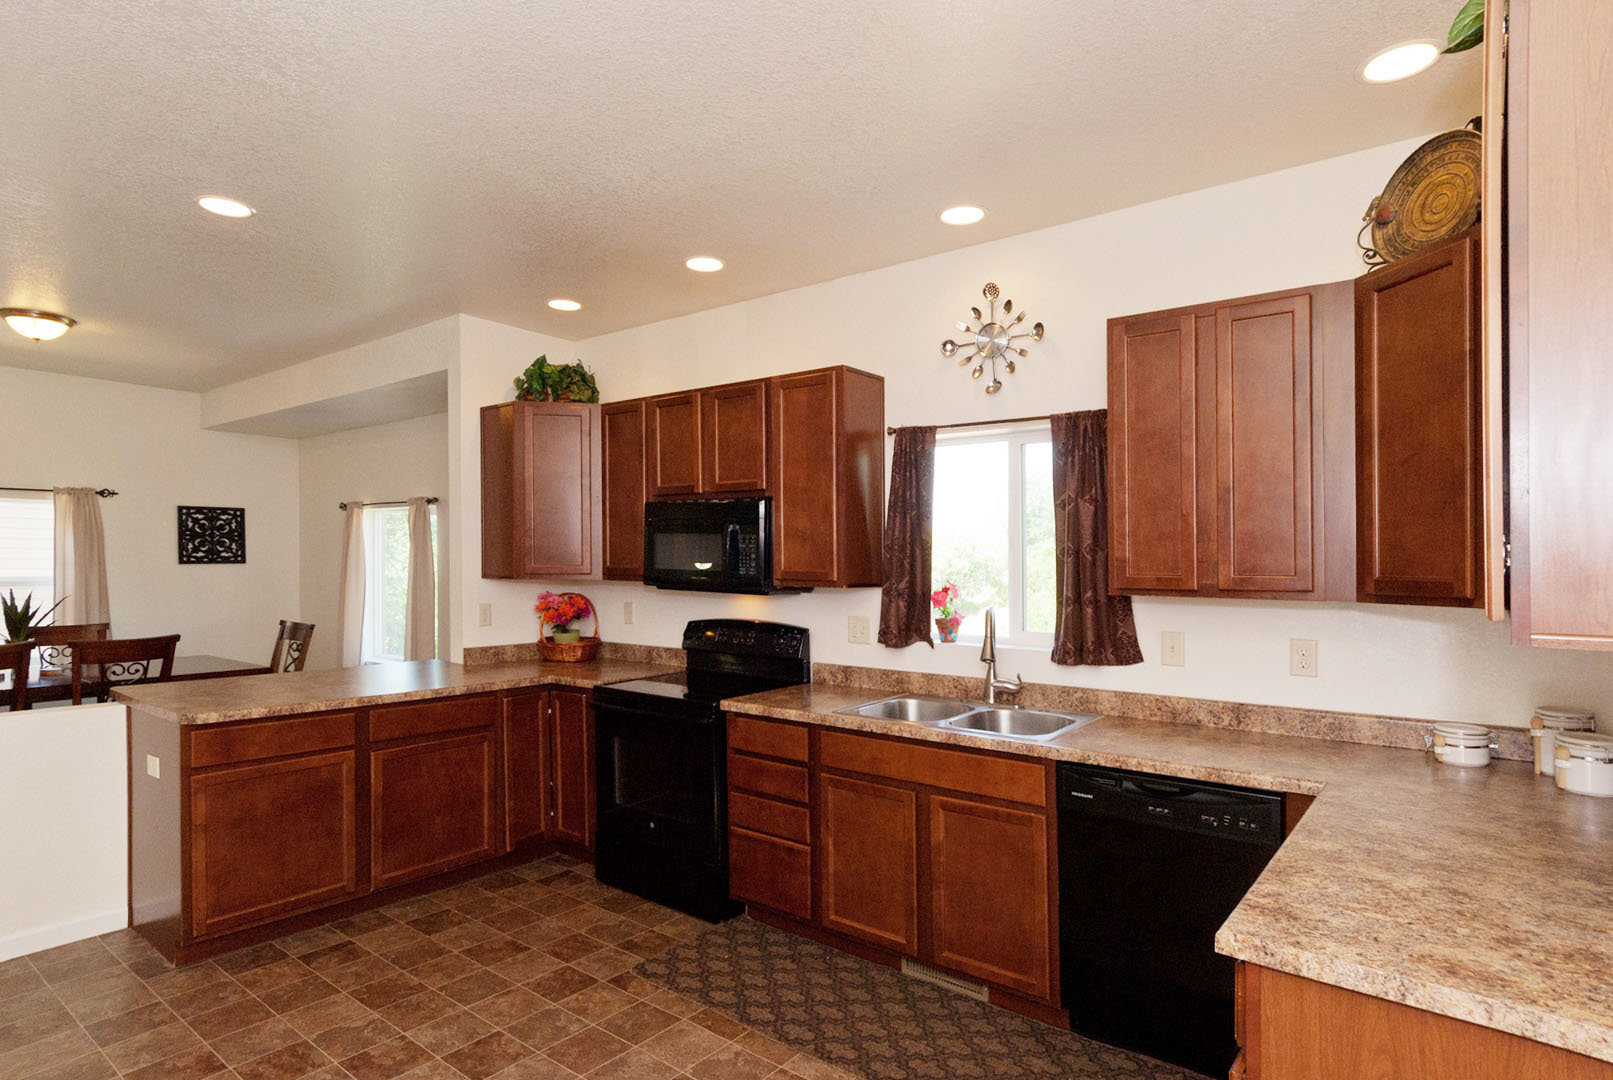 4268-marlow-circle-kitchen